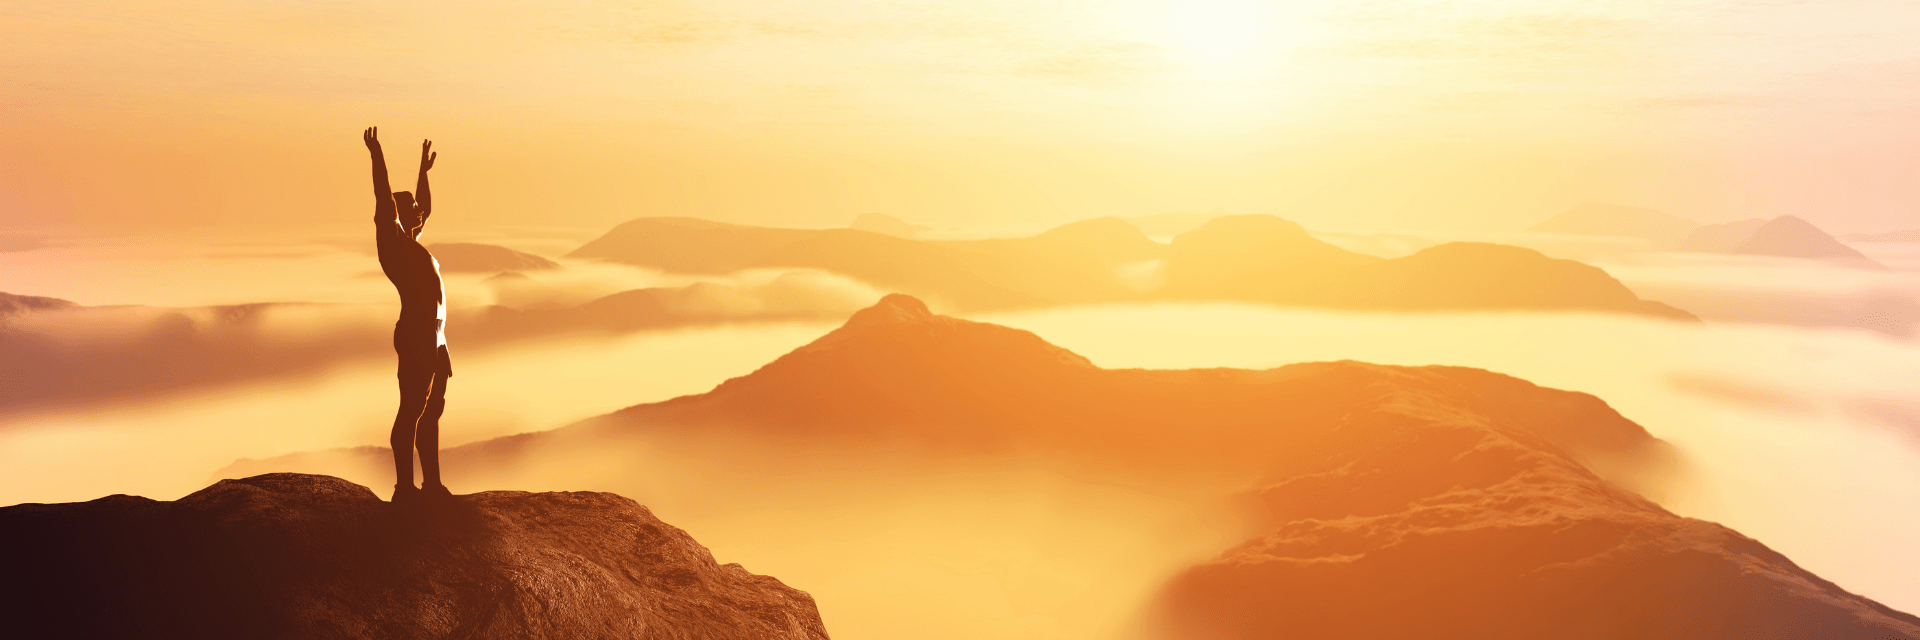 person on top of mountain at sunset